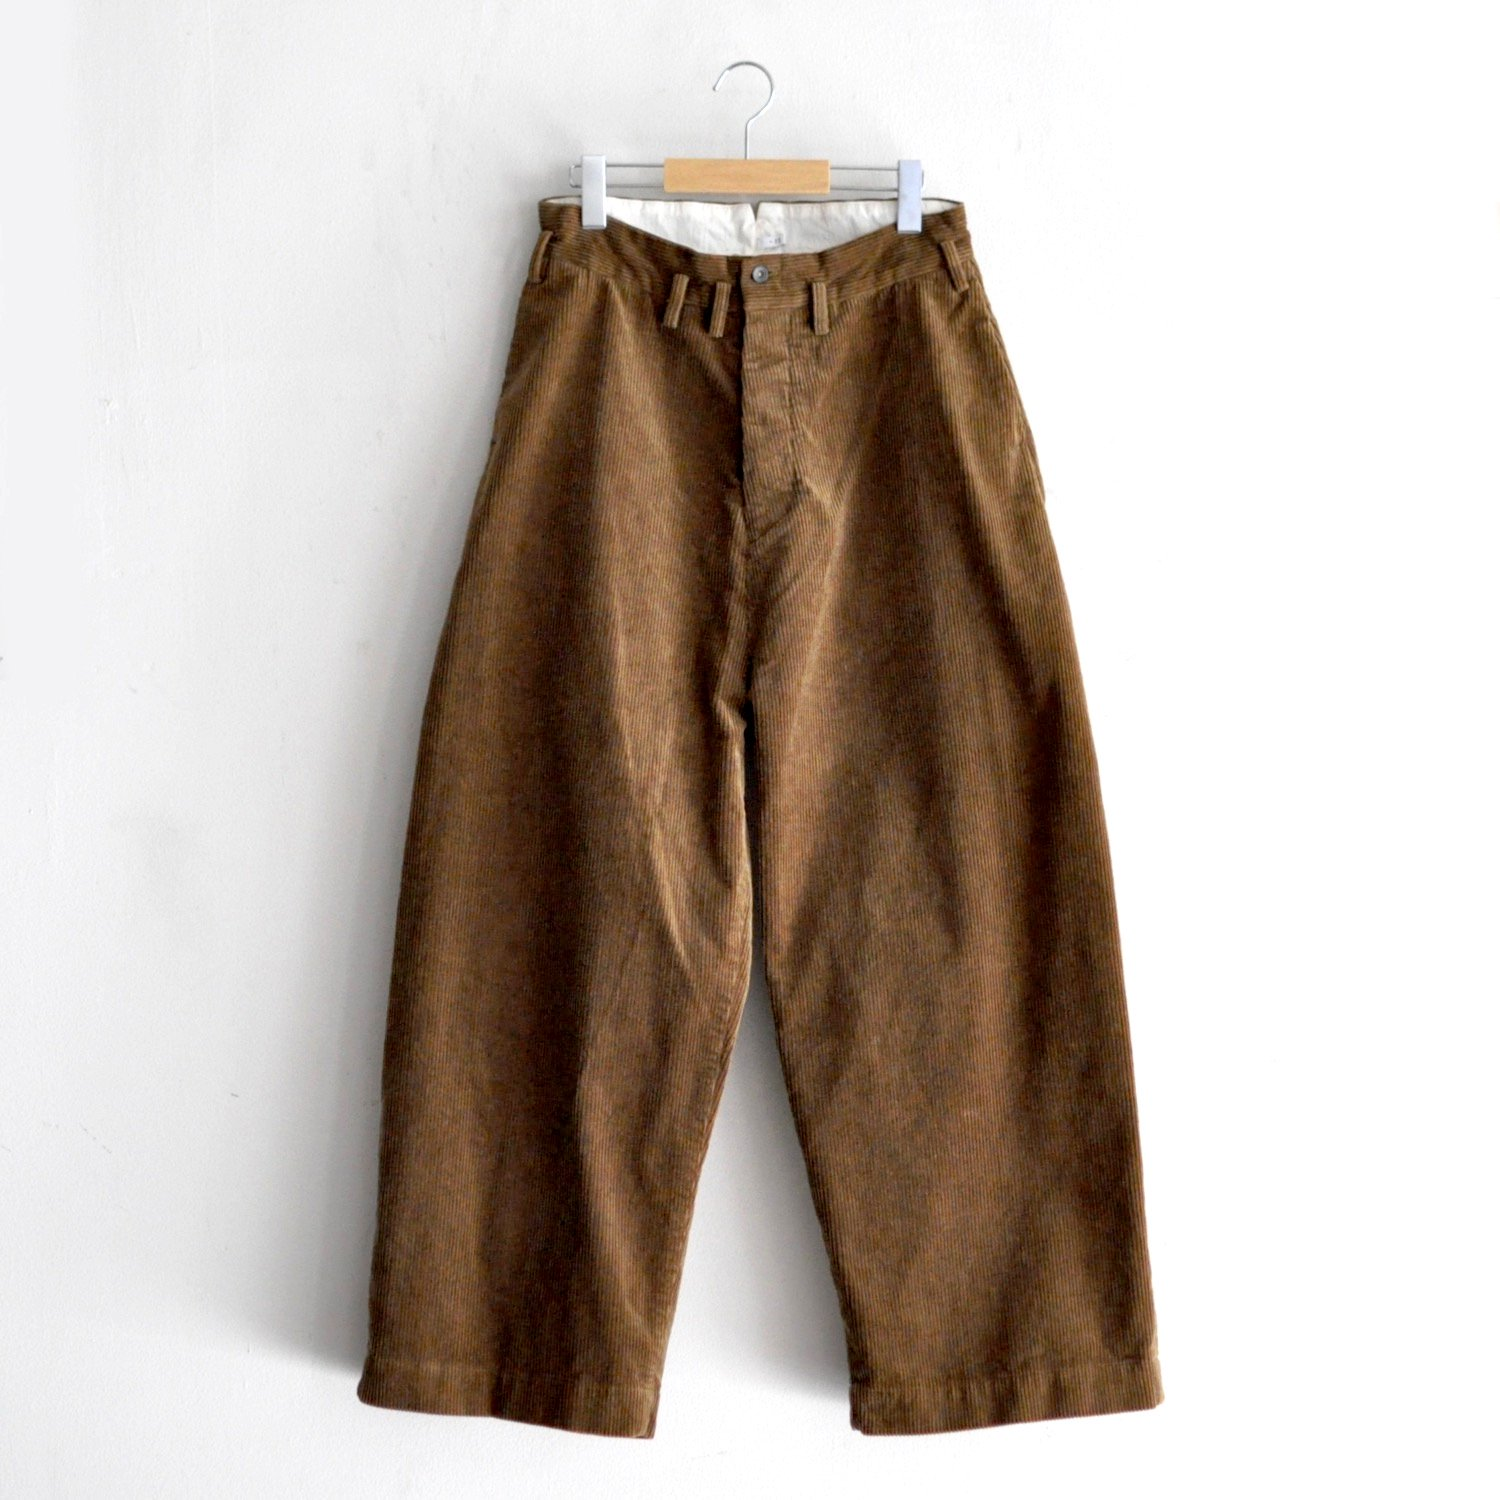 8WALE HEAVY CORDUROY WIDE PANTS [KHAKI BROWN]